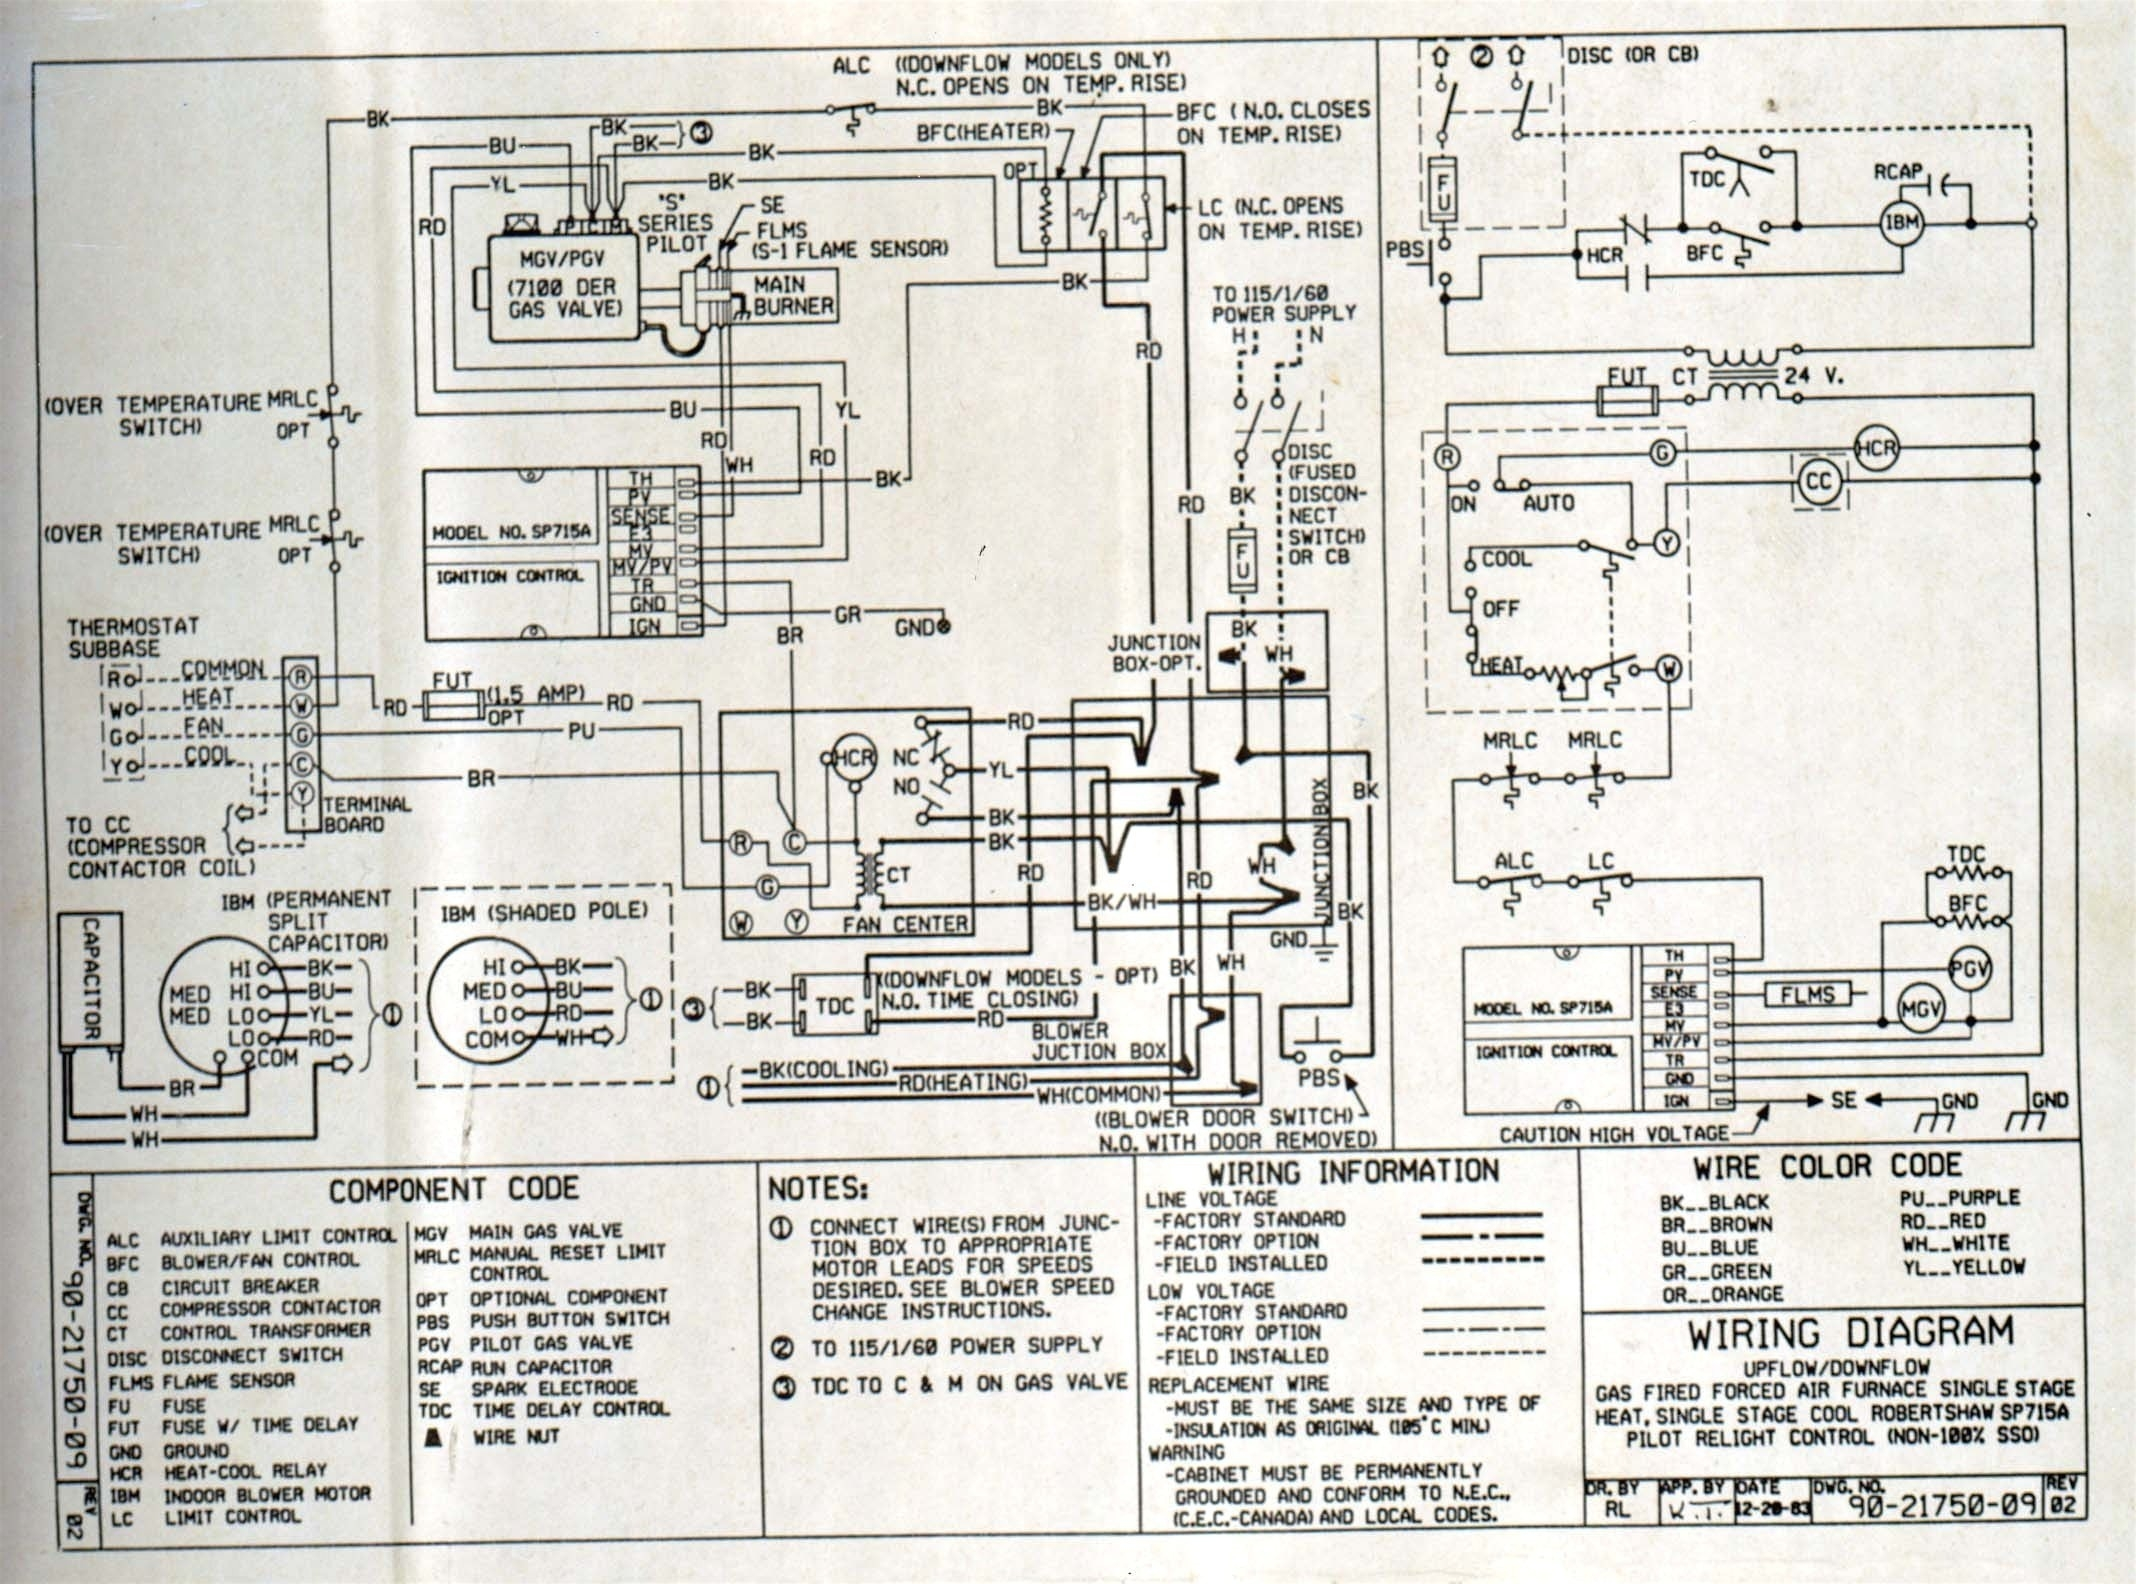 ge defrost timer wiring diagram goodman defrost board wiring diagram | free wiring diagram york defrost board wiring diagram